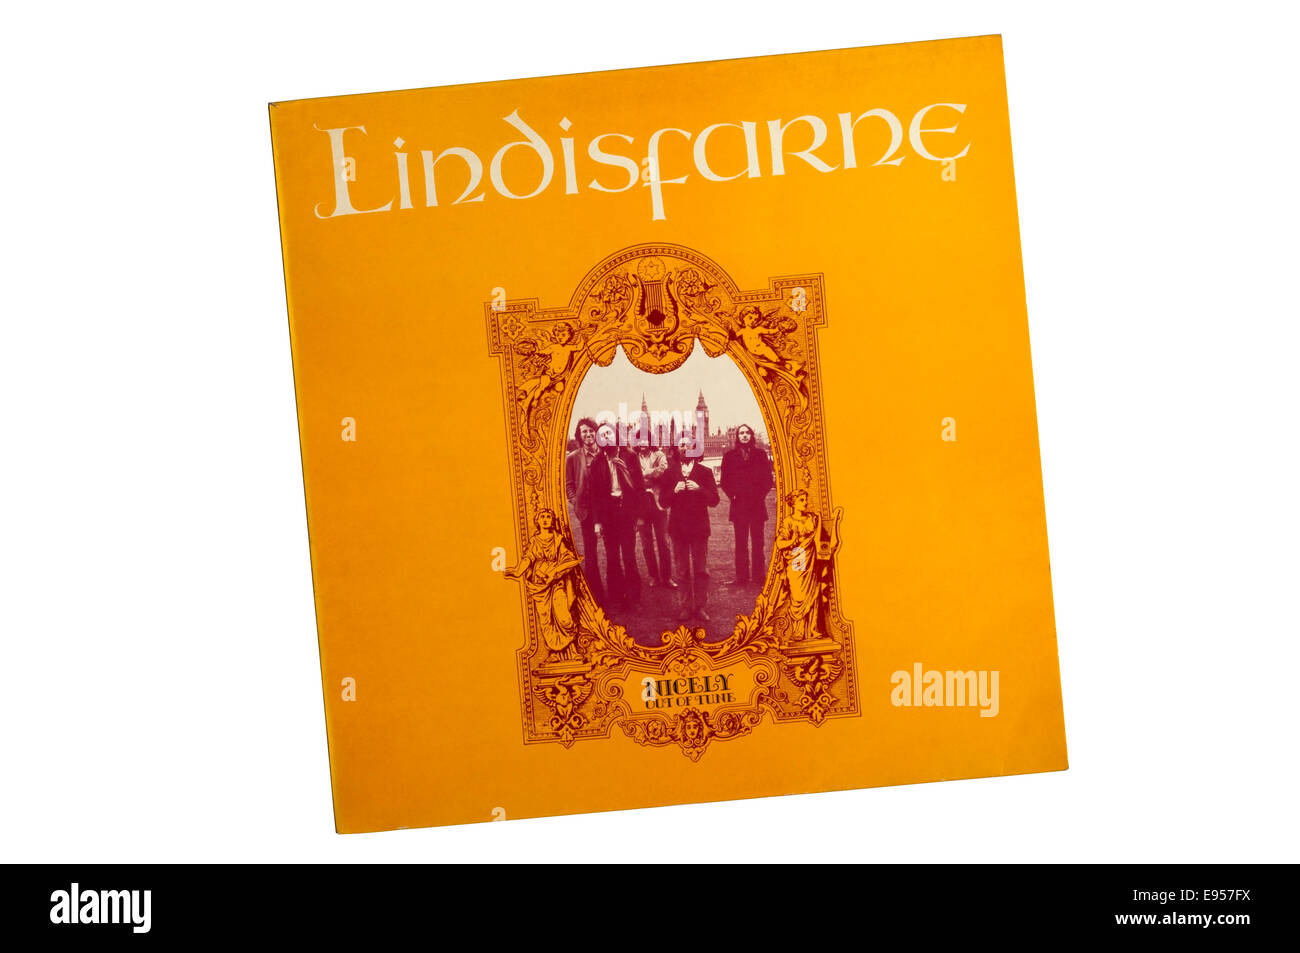 Nicely Out of Tune was the debut album by Lindisfarne released in 1970. - Stock Image